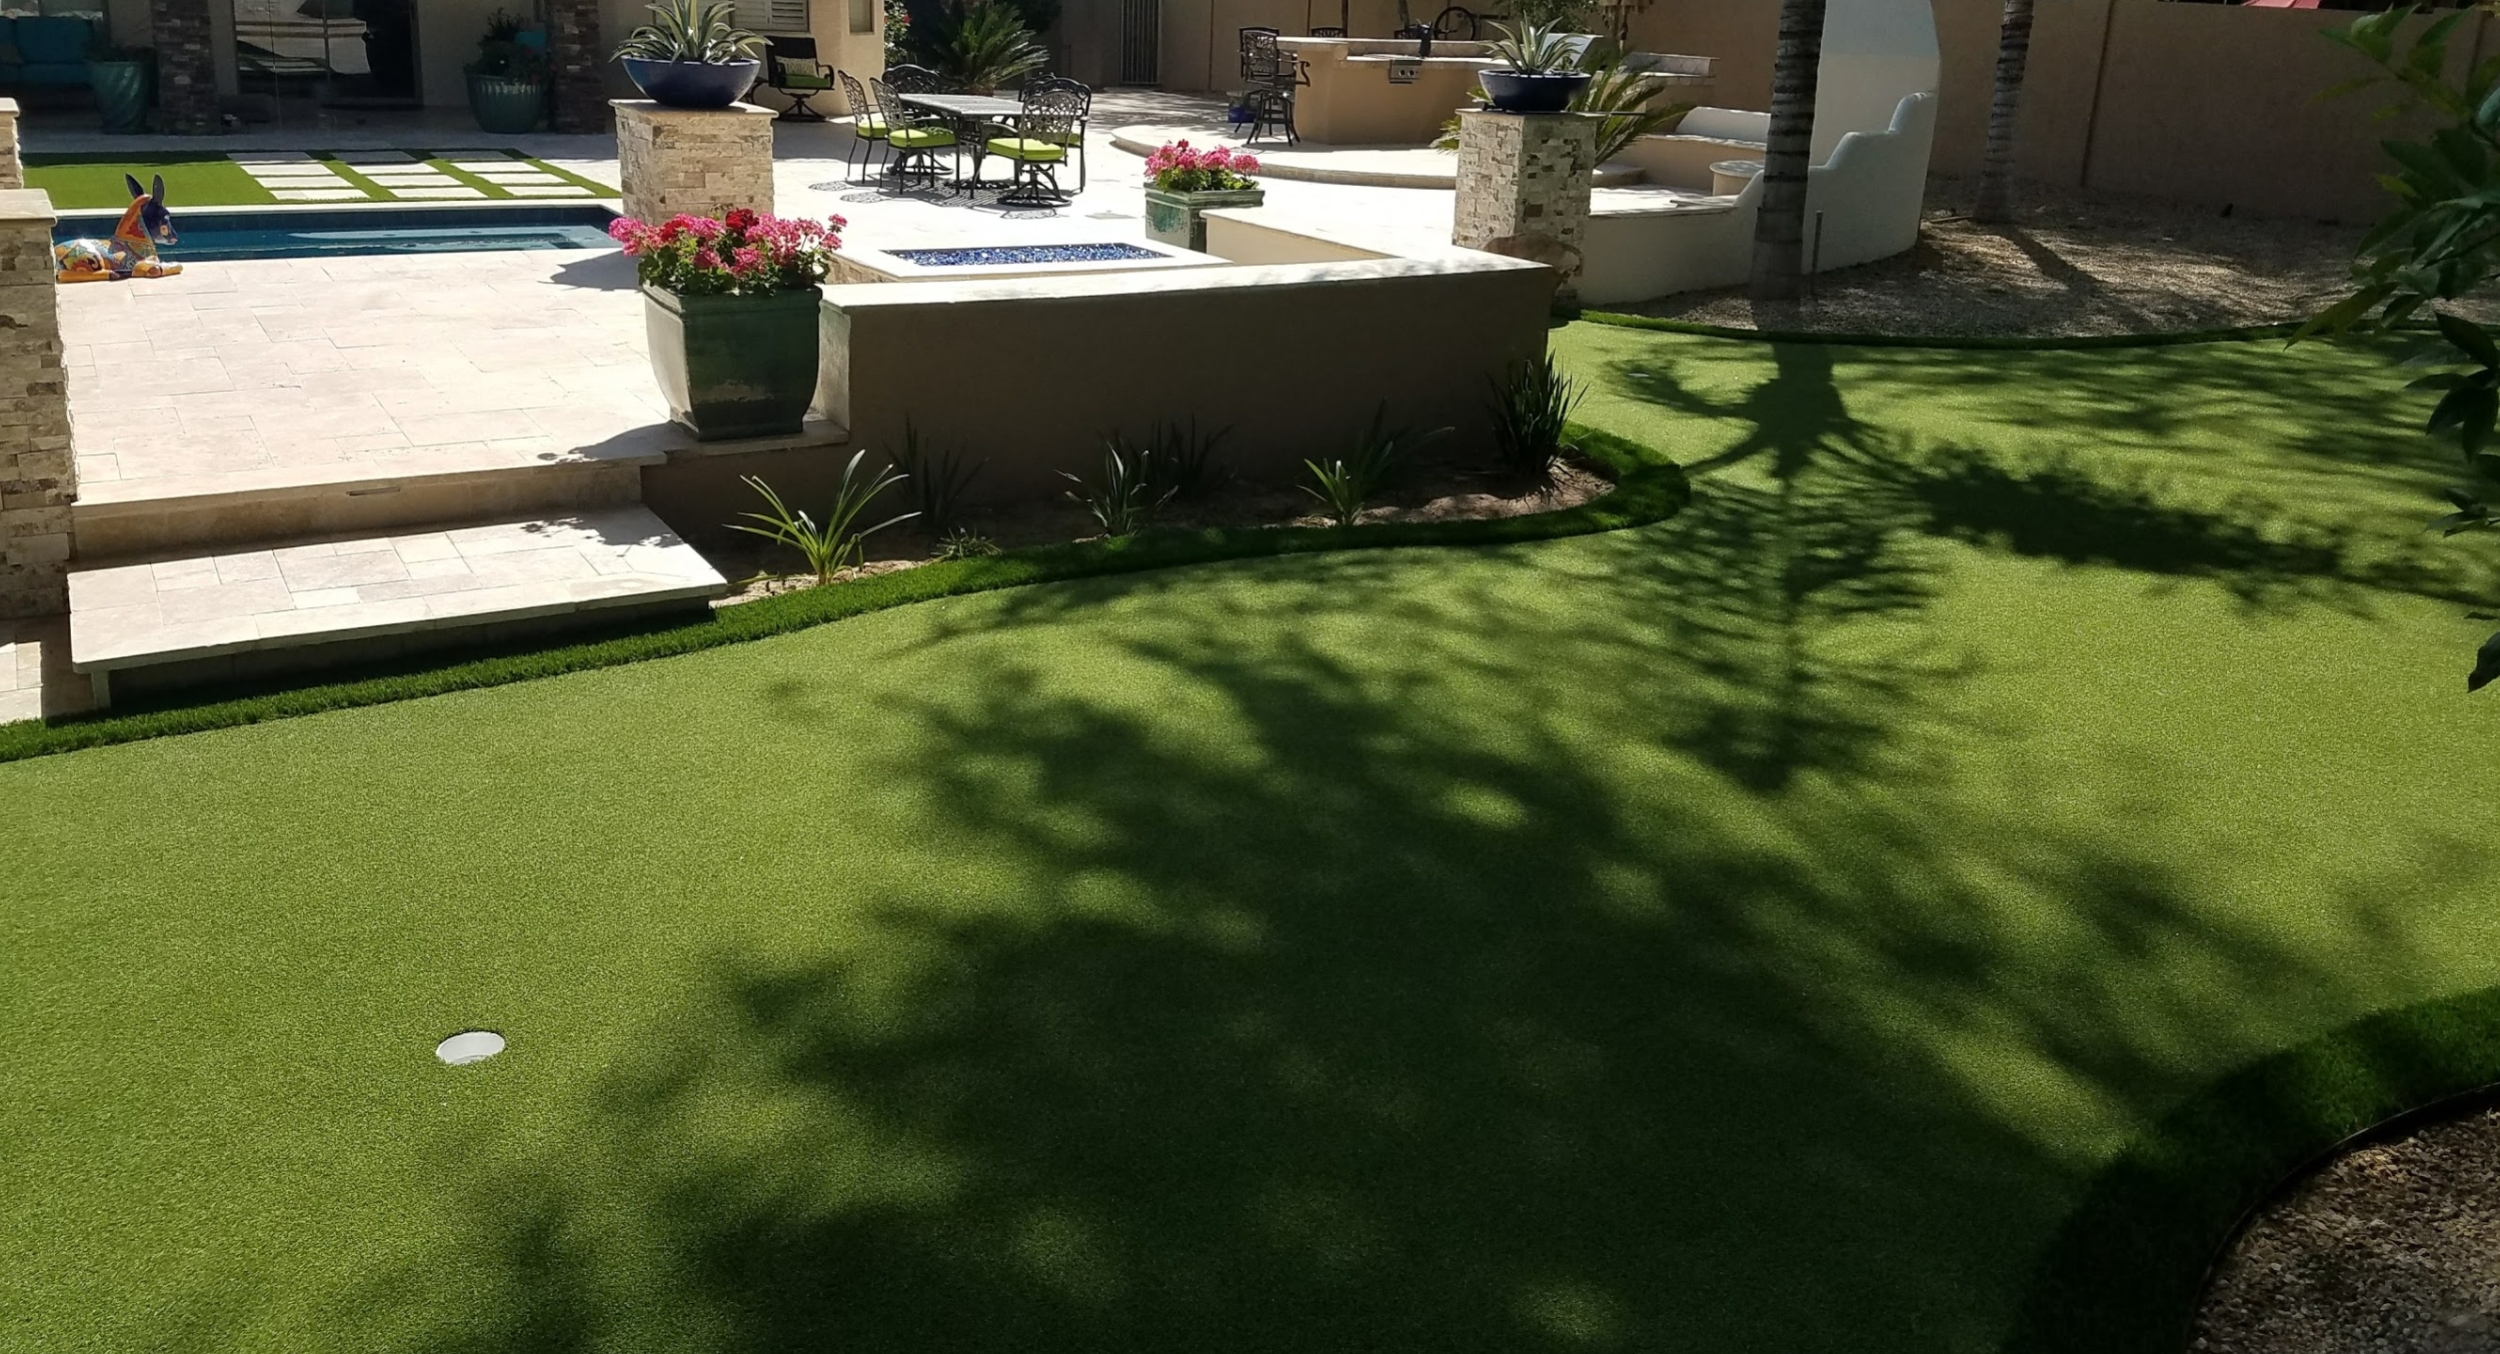 Having a shady corner free for Peoria, AZ home putting greens is certainly a huge stroke of luck. So much more pleasant building your game skills.